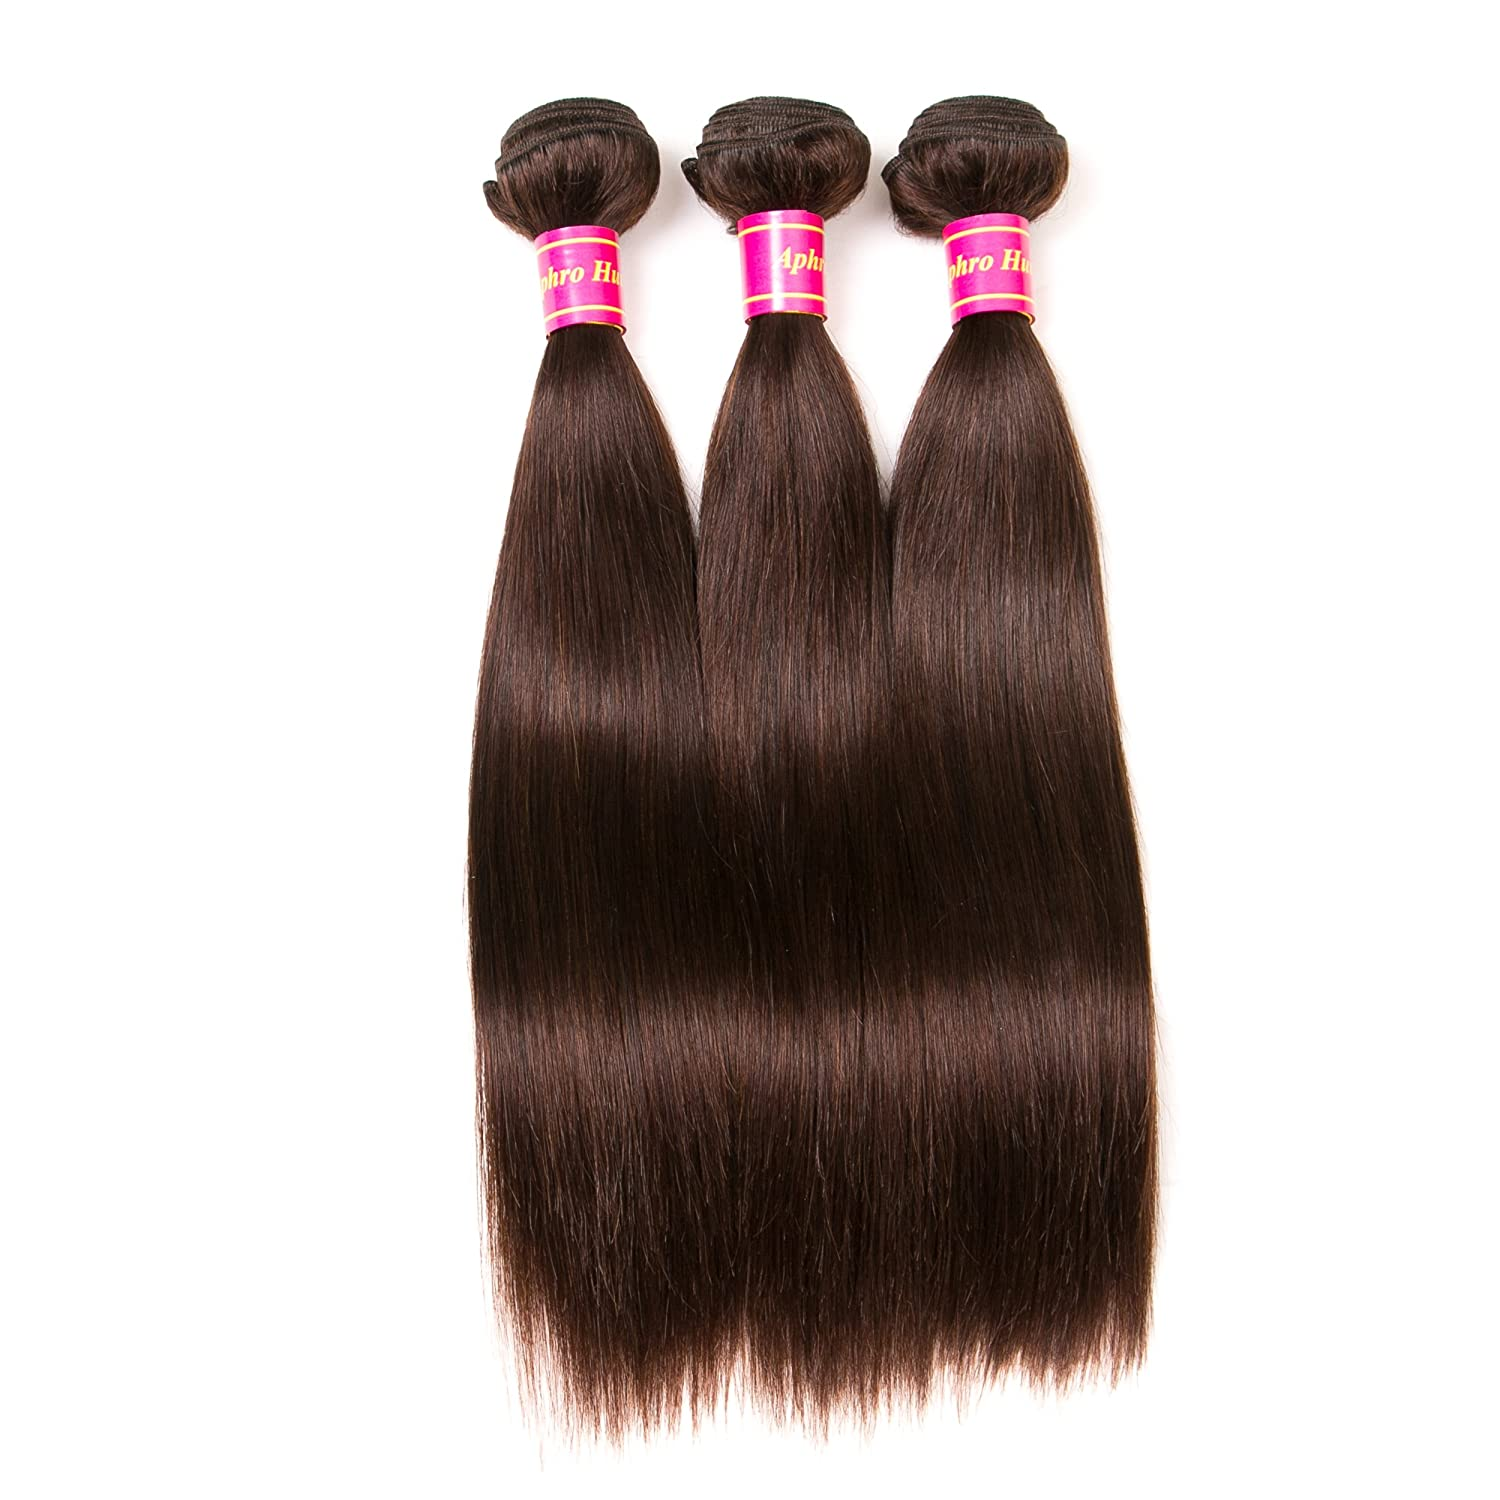 Human Hair Weaves Hair Weaves Allrun Pre-colored 2# Dark Brown 4 Bundles One Pack Indian Body Wave Bundles Non Remy Sheeding Free 100% Human Hair Extensions Cheap Sales 50%